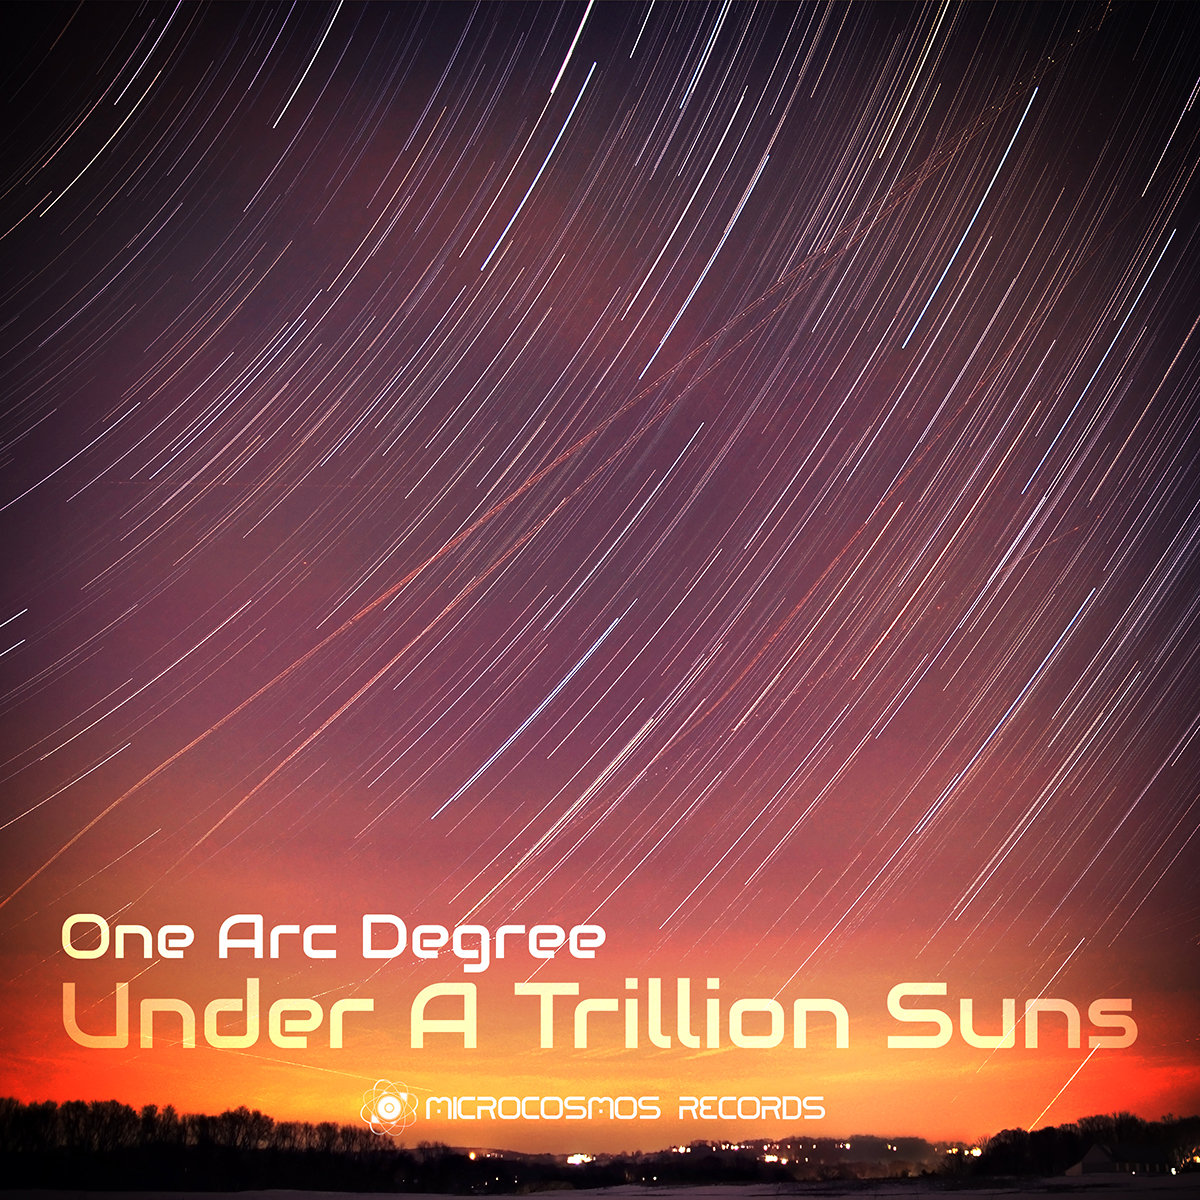 One Arc Degree - Under A Trillion Suns @ 'Under A Trillion Suns' album (ambient, chill-out)